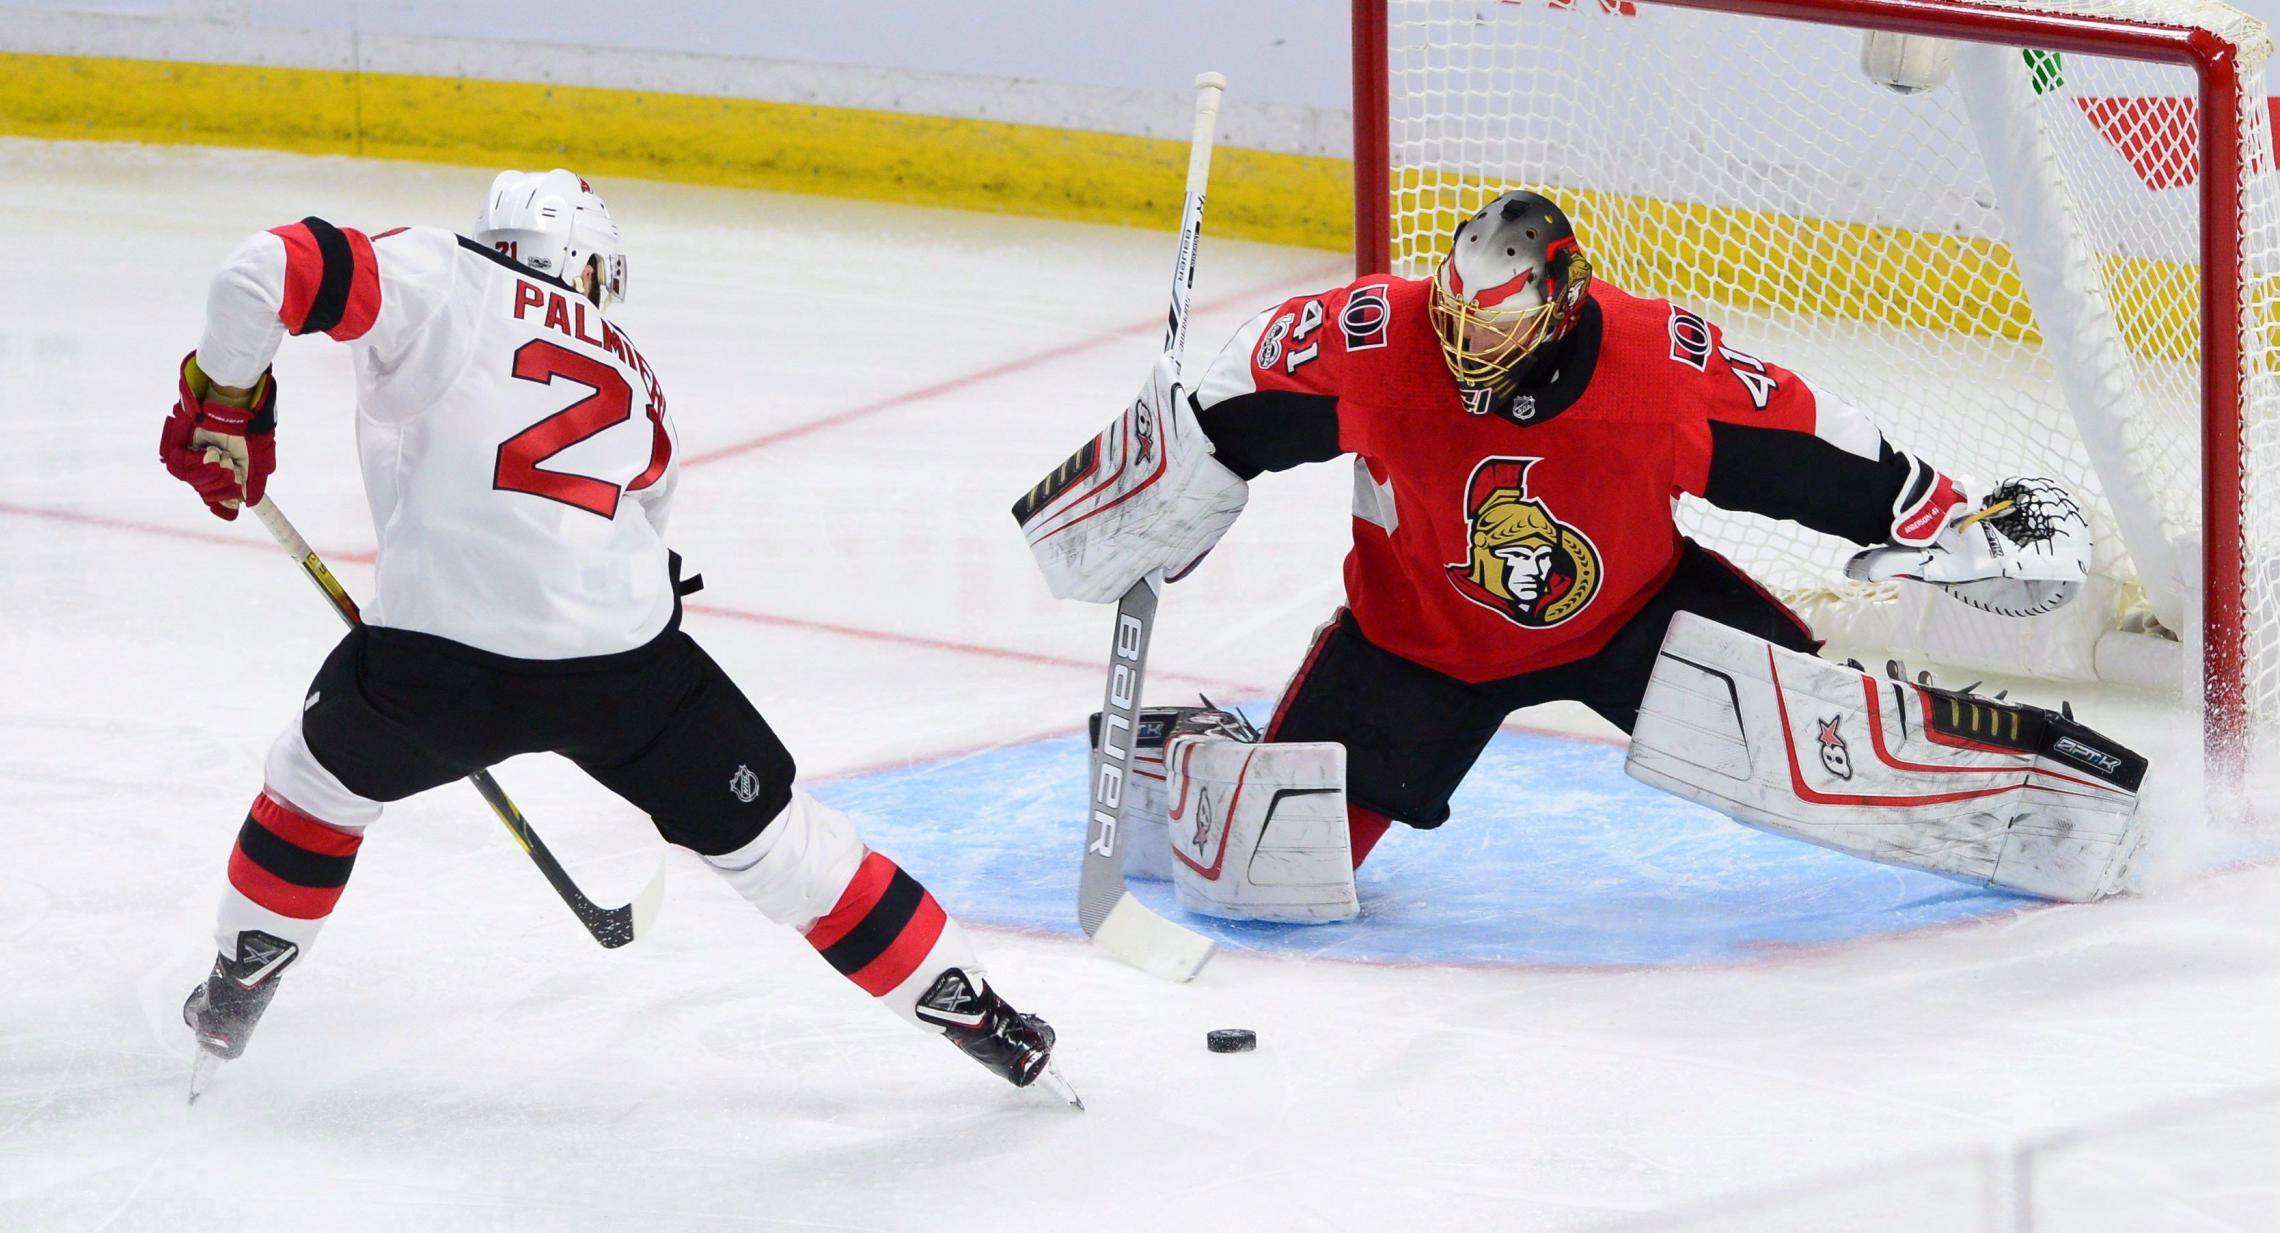 Coronavirus tips: 7 lessons we can learn from hockey